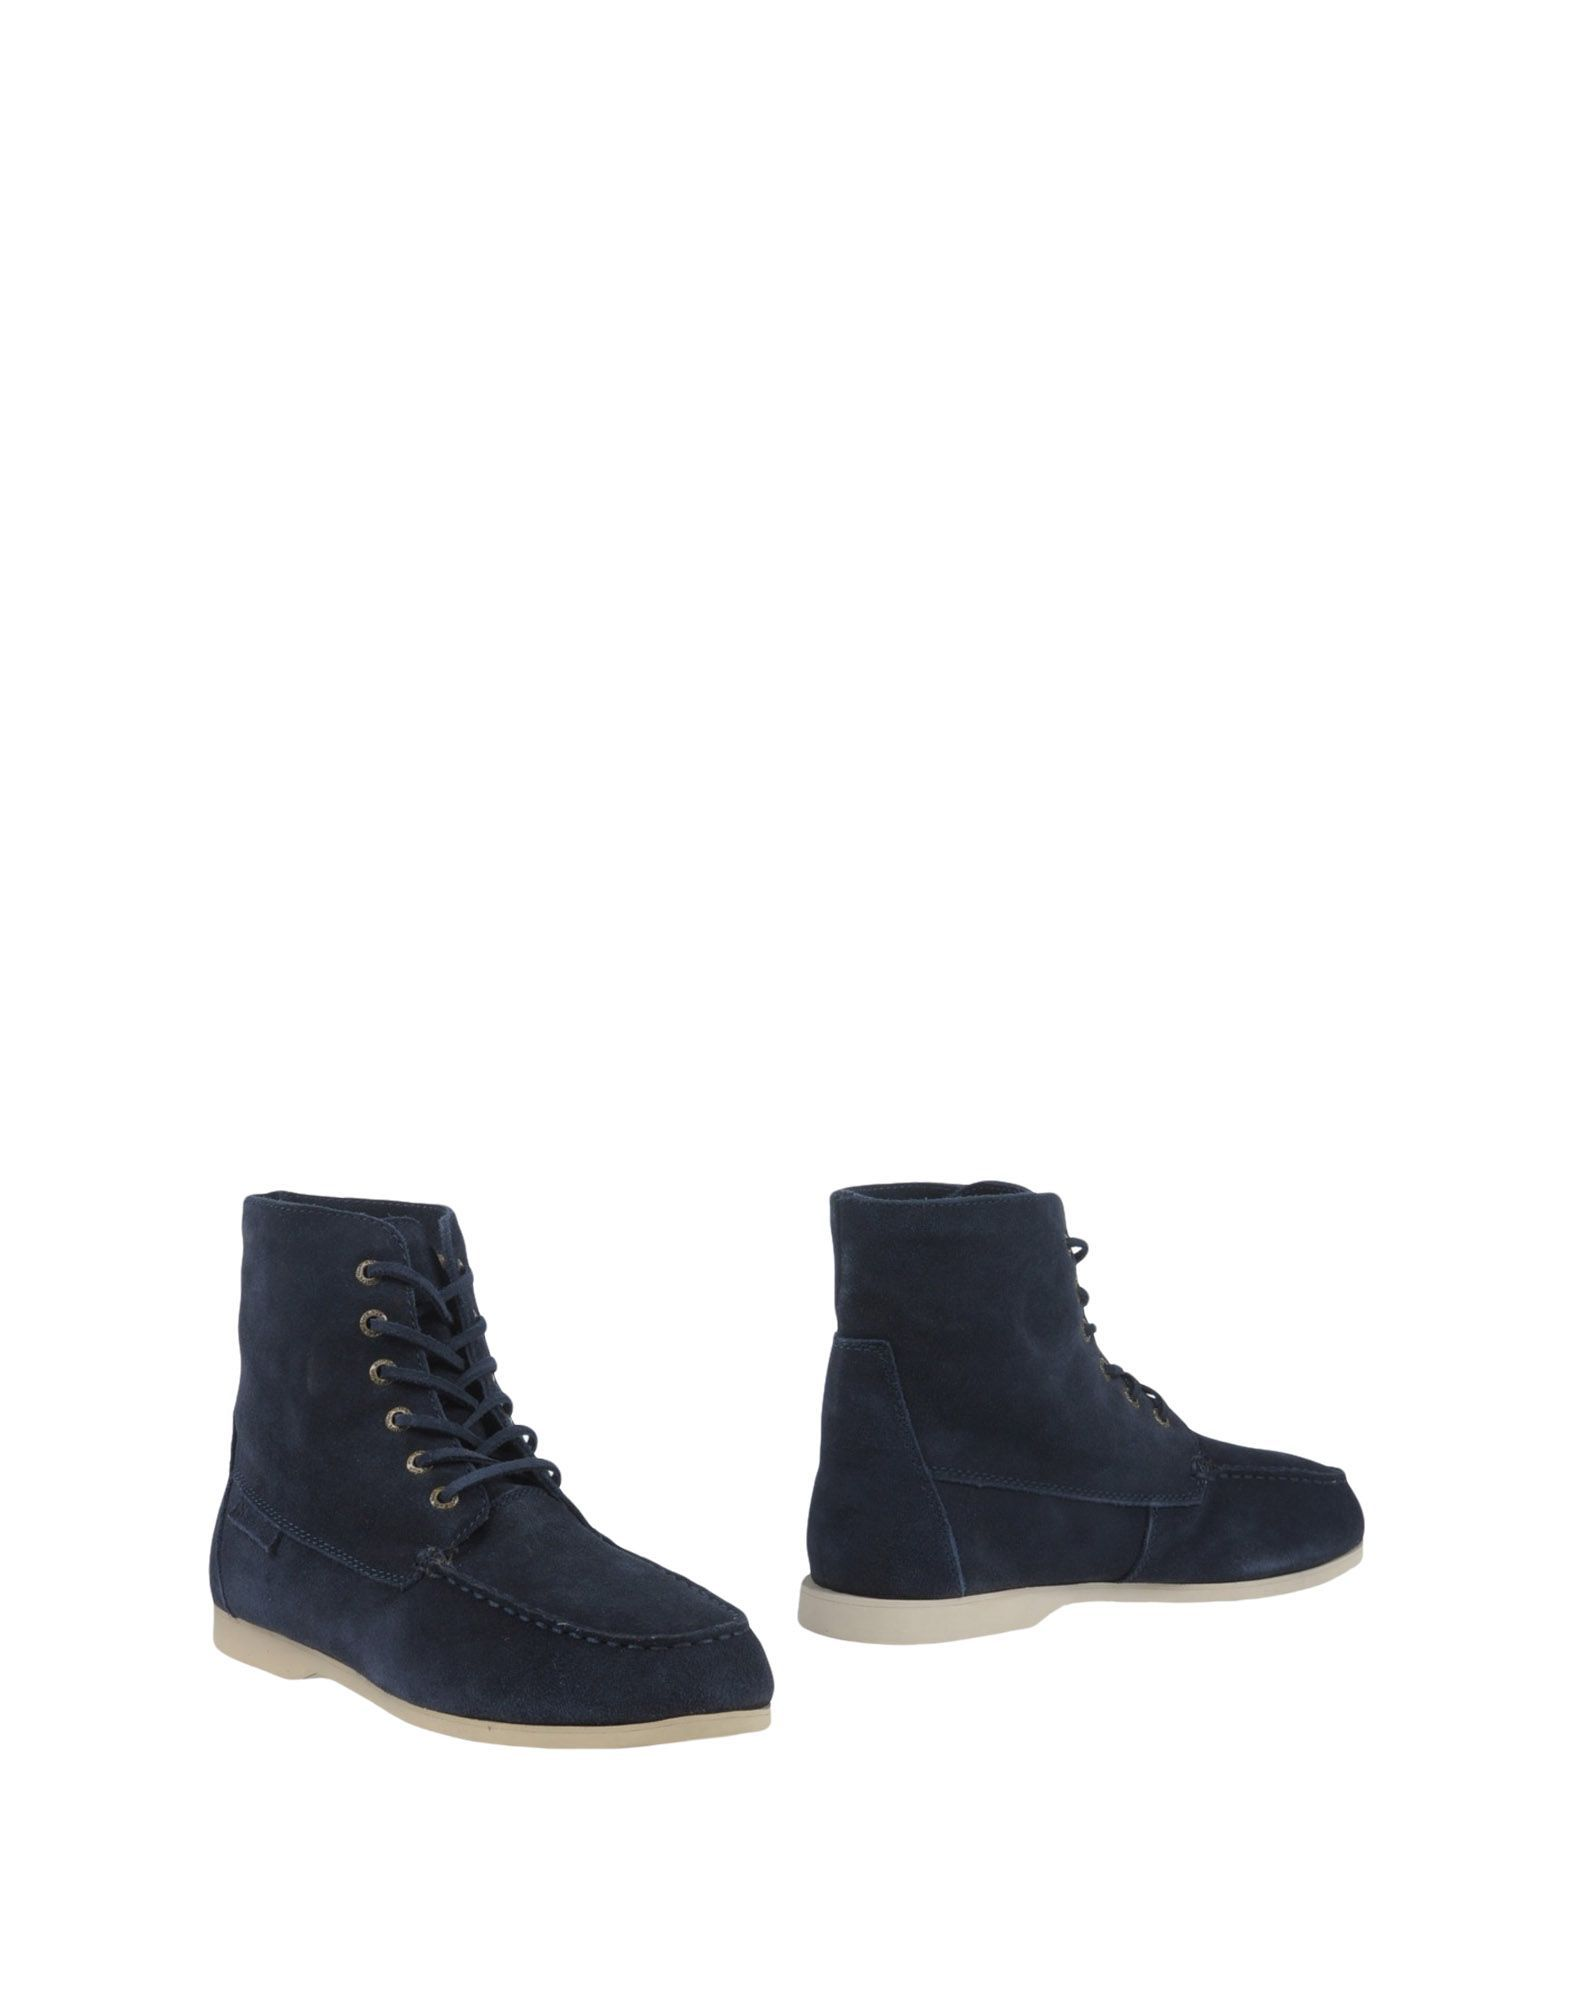 Superga Dark Blue Leather Ankle Boots